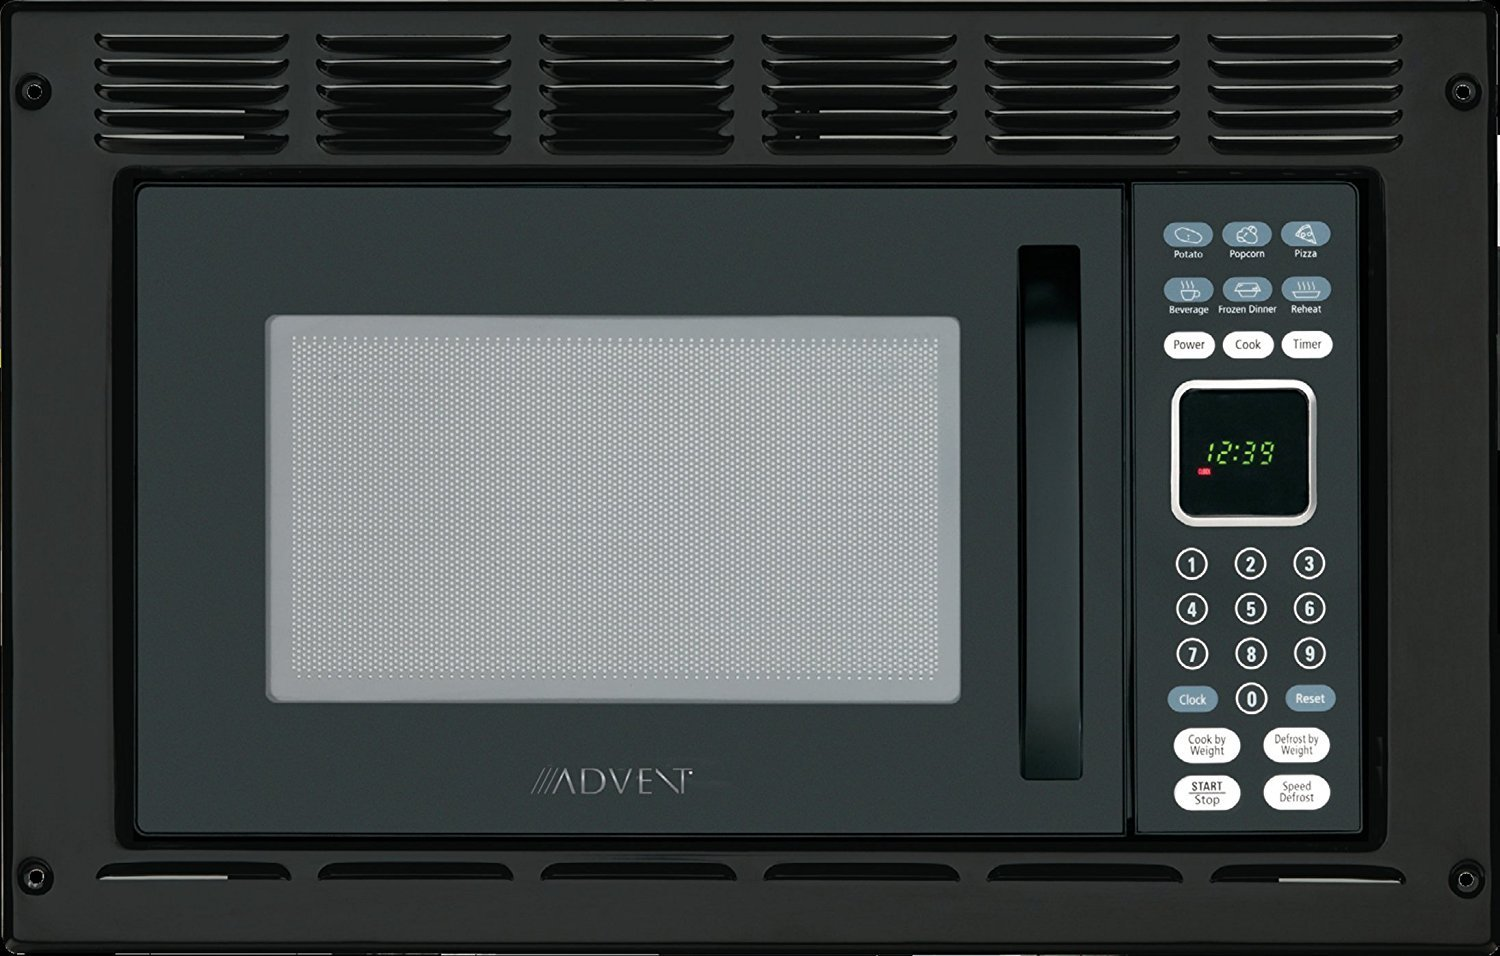 Advent mw912bwdk negro integrado horno de microondas con ...